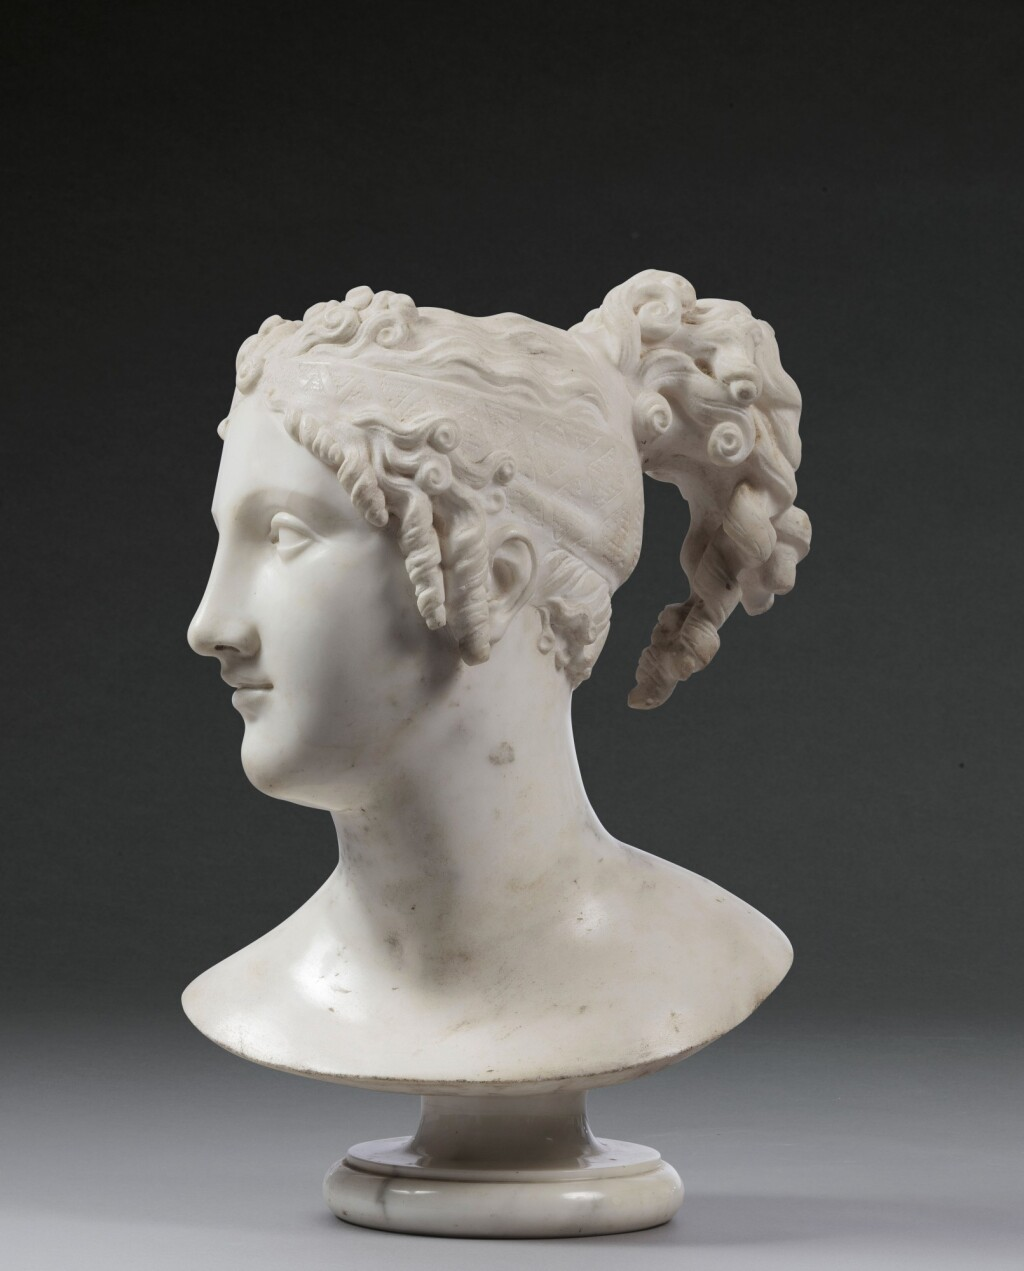 AFTER ANTONIO CANOVA (1757-1822) | BUST OF TERPSICHORE LYRAN (MUSE OF LYRIC POETRY)